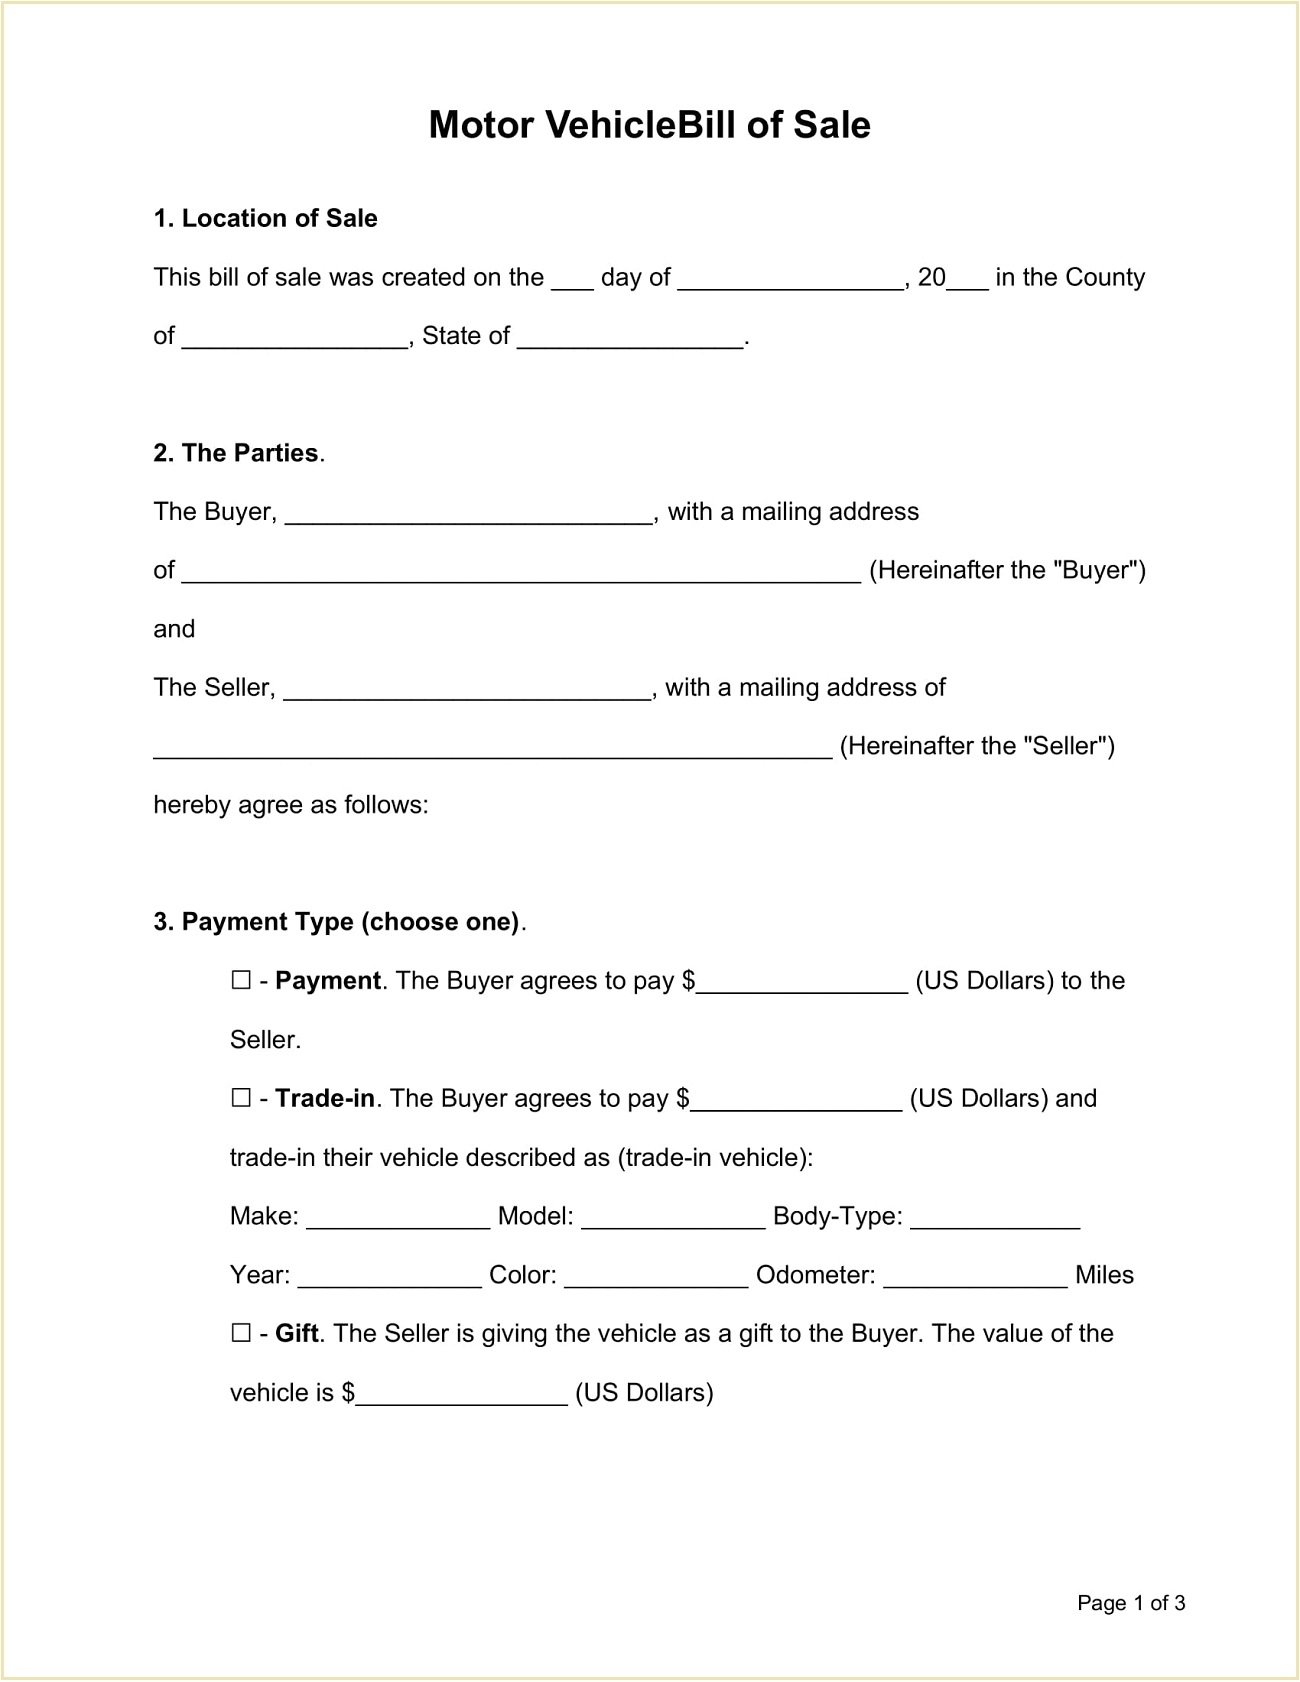 Sample Motor Vehicle Bill of Sale Form Template Word Doc